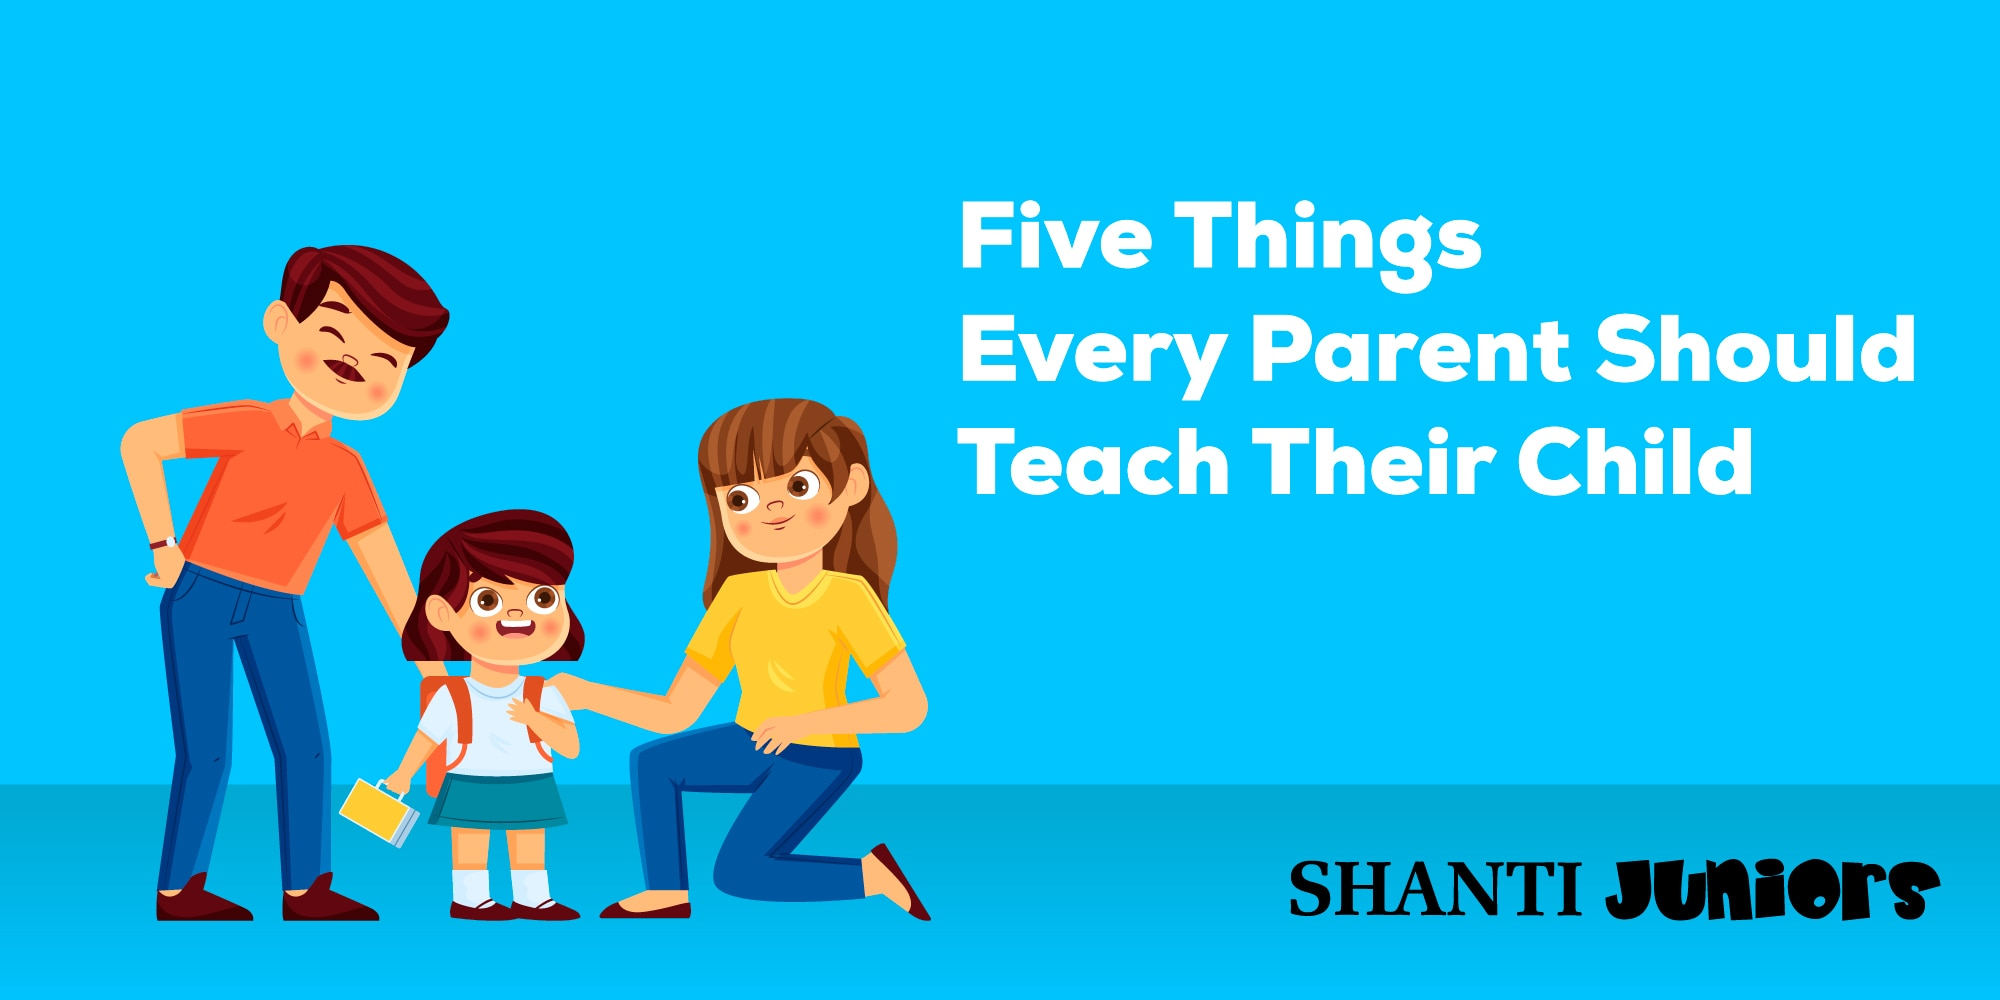 Five Things Every Parent Should Teach Their Child